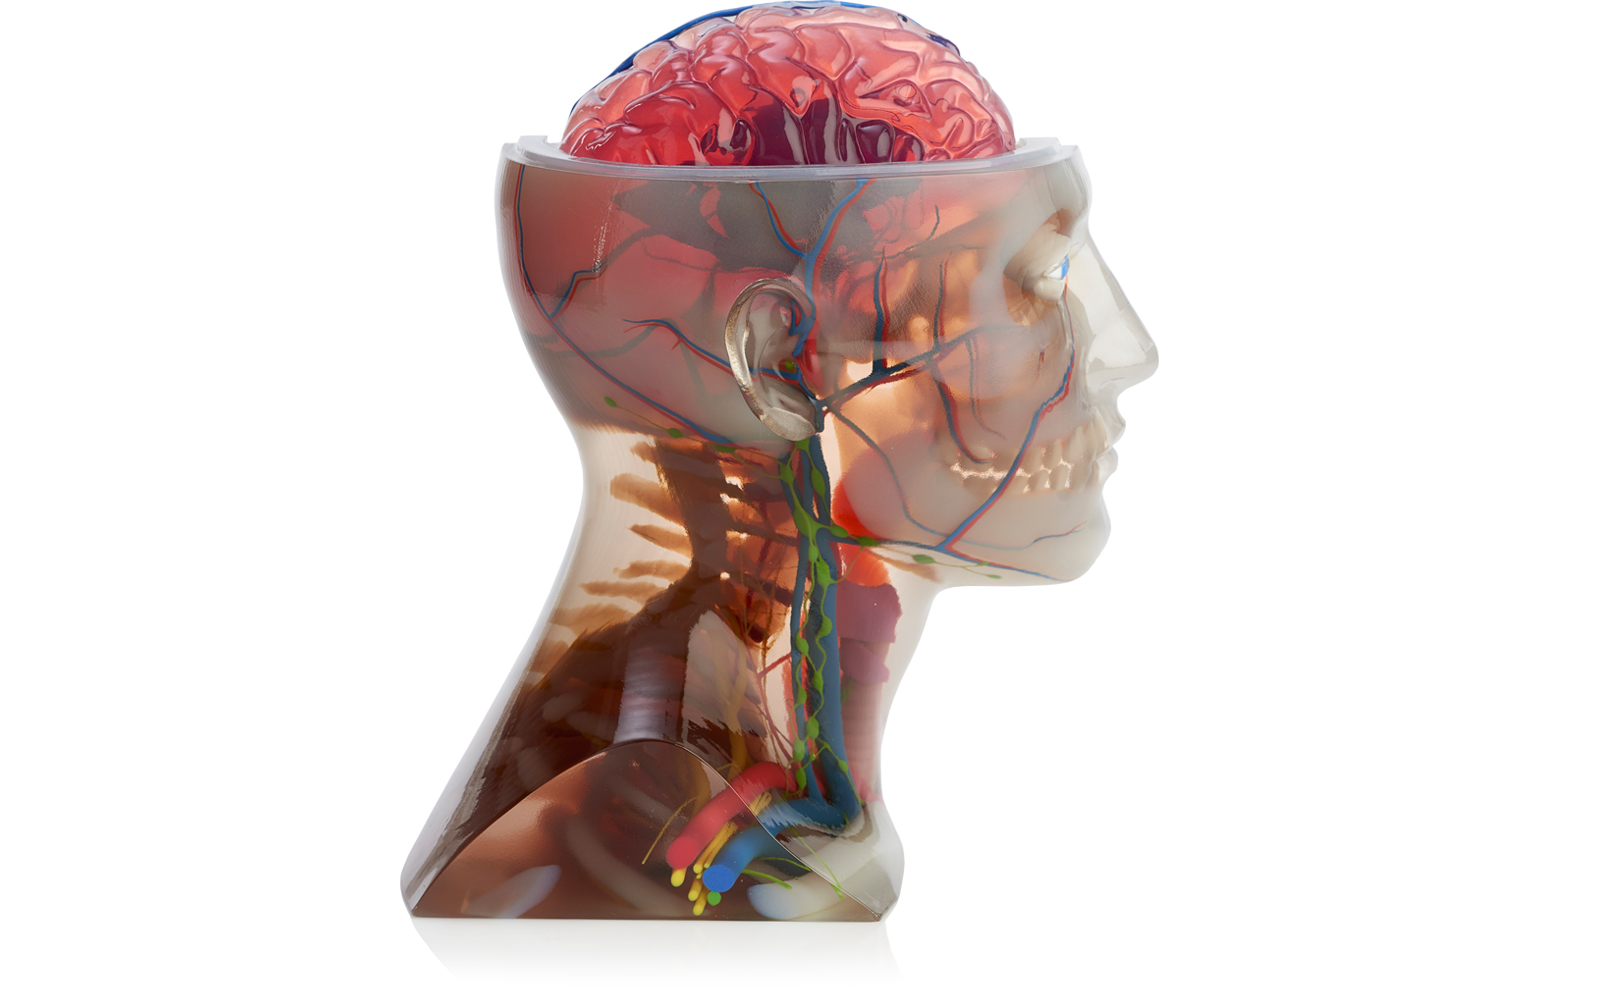 Anatomical head model 3D printed on the Stratasys J750. Photo via Stratasys